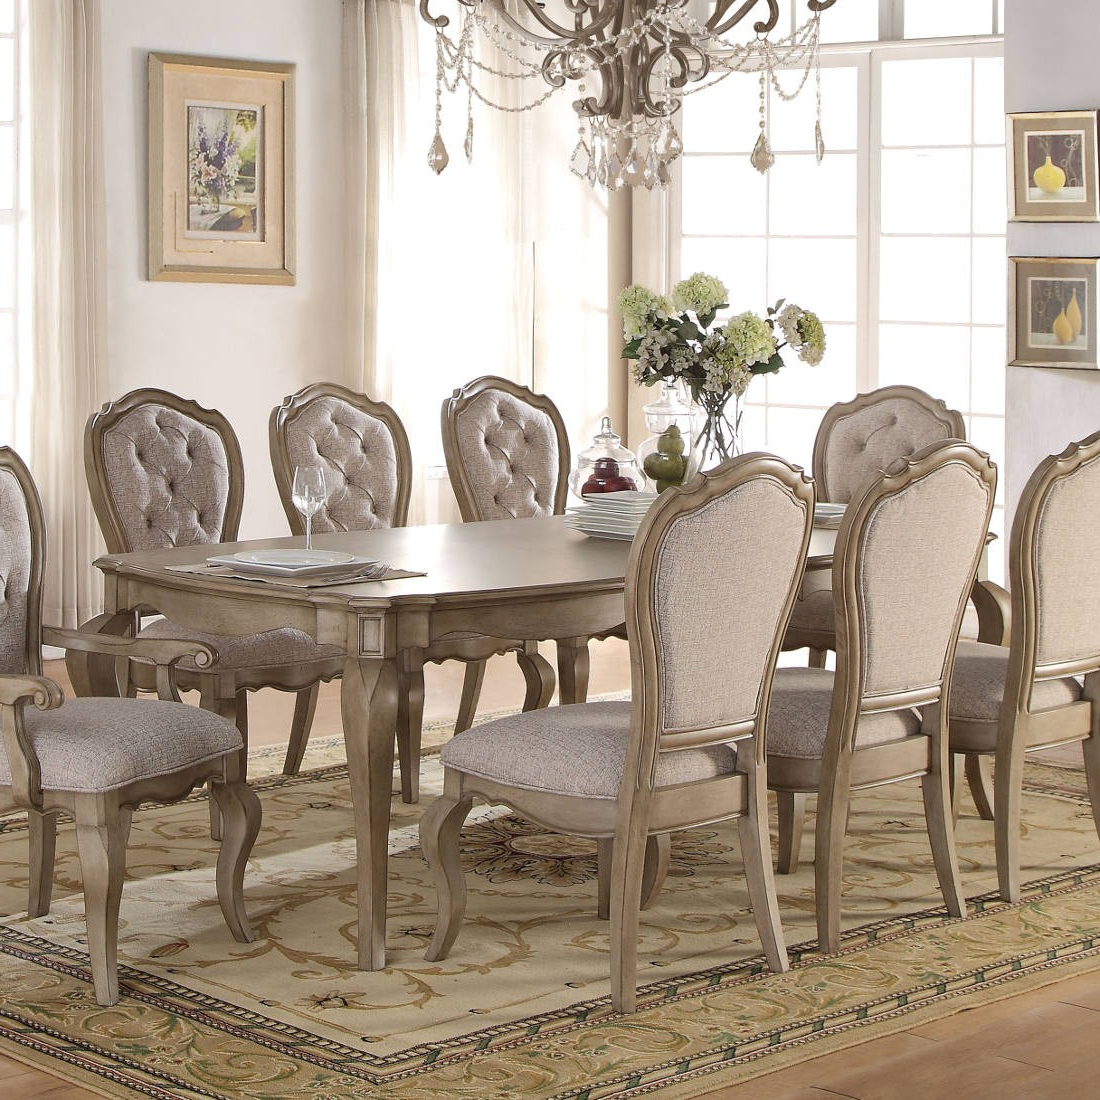 Well Known Chelmsford 3 Piece Dining Sets With Regard To Acme Chelmsford Dining Table In Antique Taupe (View 3 of 25)